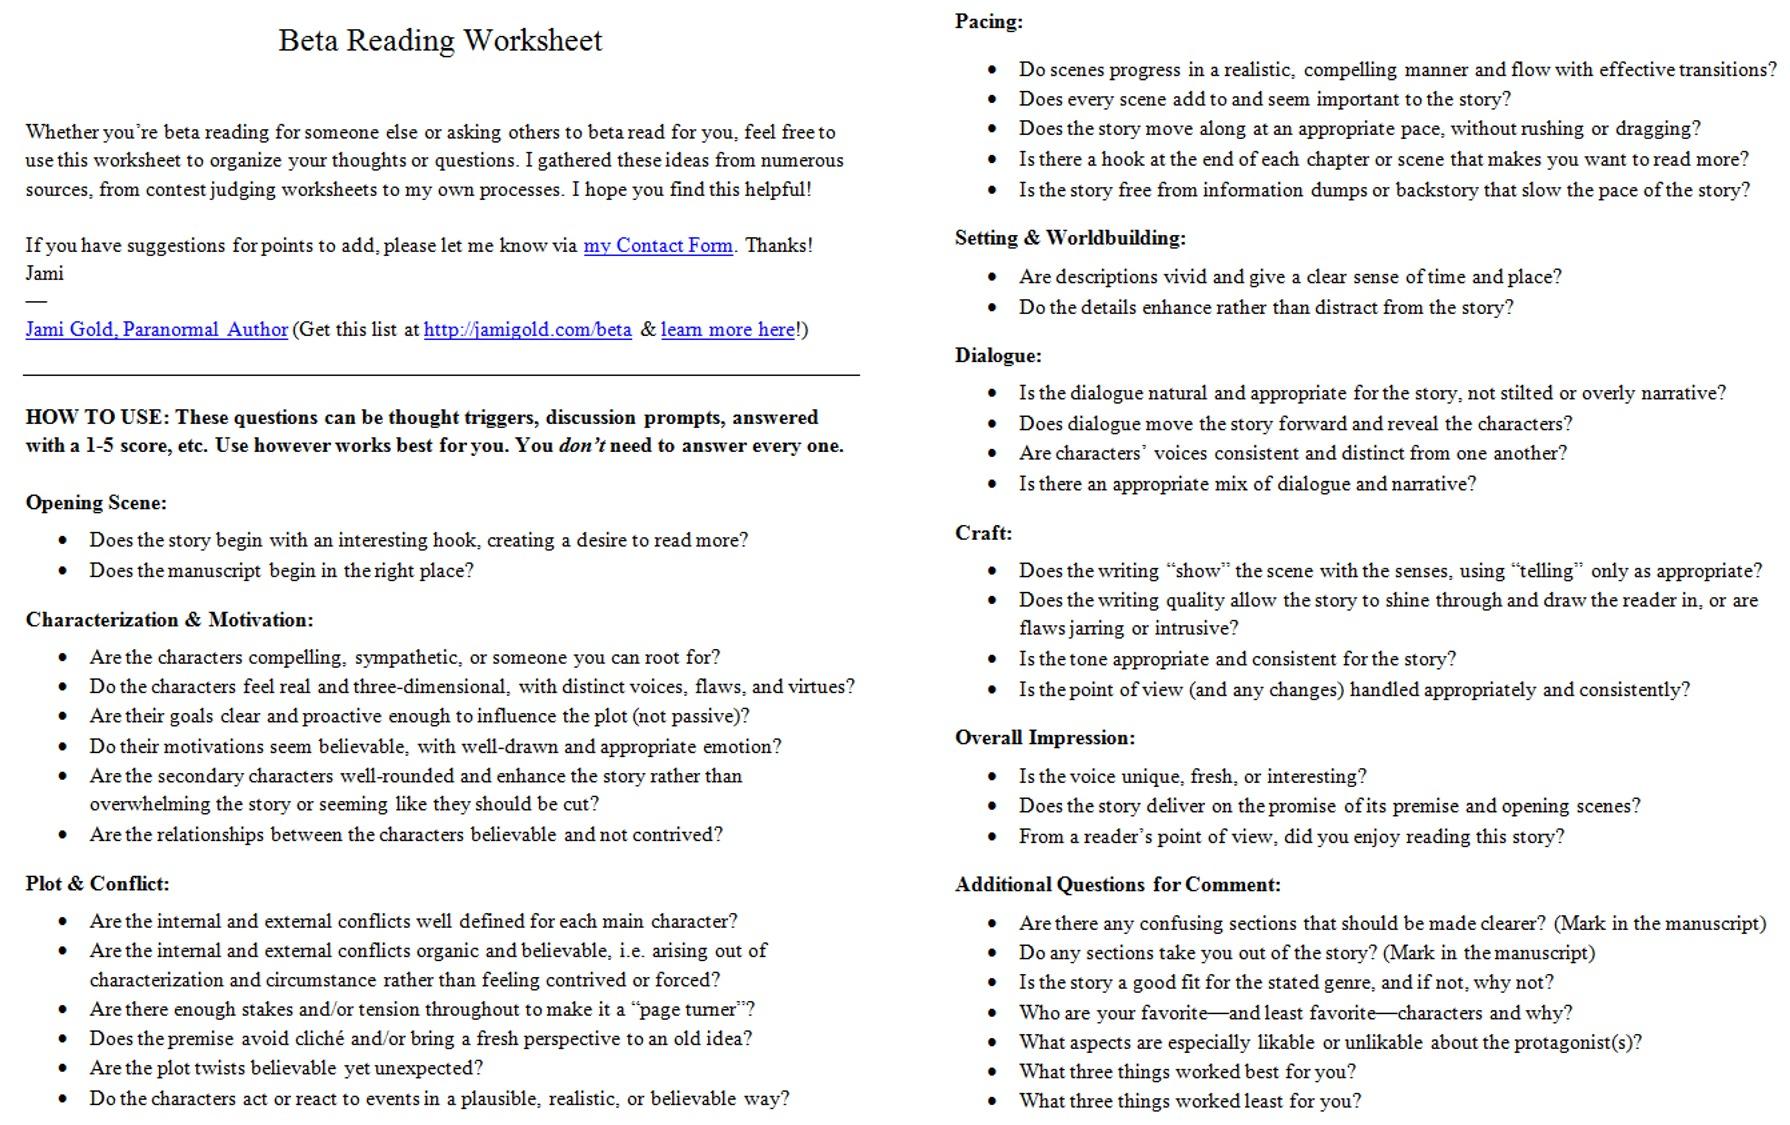 Aldiablosus  Ravishing Worksheets For Writers  Jami Gold Paranormal Author With Luxury Screen Shot Of The Twopage Beta Reading Worksheet With Amusing Algebra  Puzzle Worksheets Also Line Of Best Fit Practice Worksheet In Addition Kansas Nebraska Act Worksheet And Digraph Worksheets First Grade As Well As Nd Grade Phonics Worksheets Free Additionally Algebra Worksheets Grade  From Jamigoldcom With Aldiablosus  Luxury Worksheets For Writers  Jami Gold Paranormal Author With Amusing Screen Shot Of The Twopage Beta Reading Worksheet And Ravishing Algebra  Puzzle Worksheets Also Line Of Best Fit Practice Worksheet In Addition Kansas Nebraska Act Worksheet From Jamigoldcom